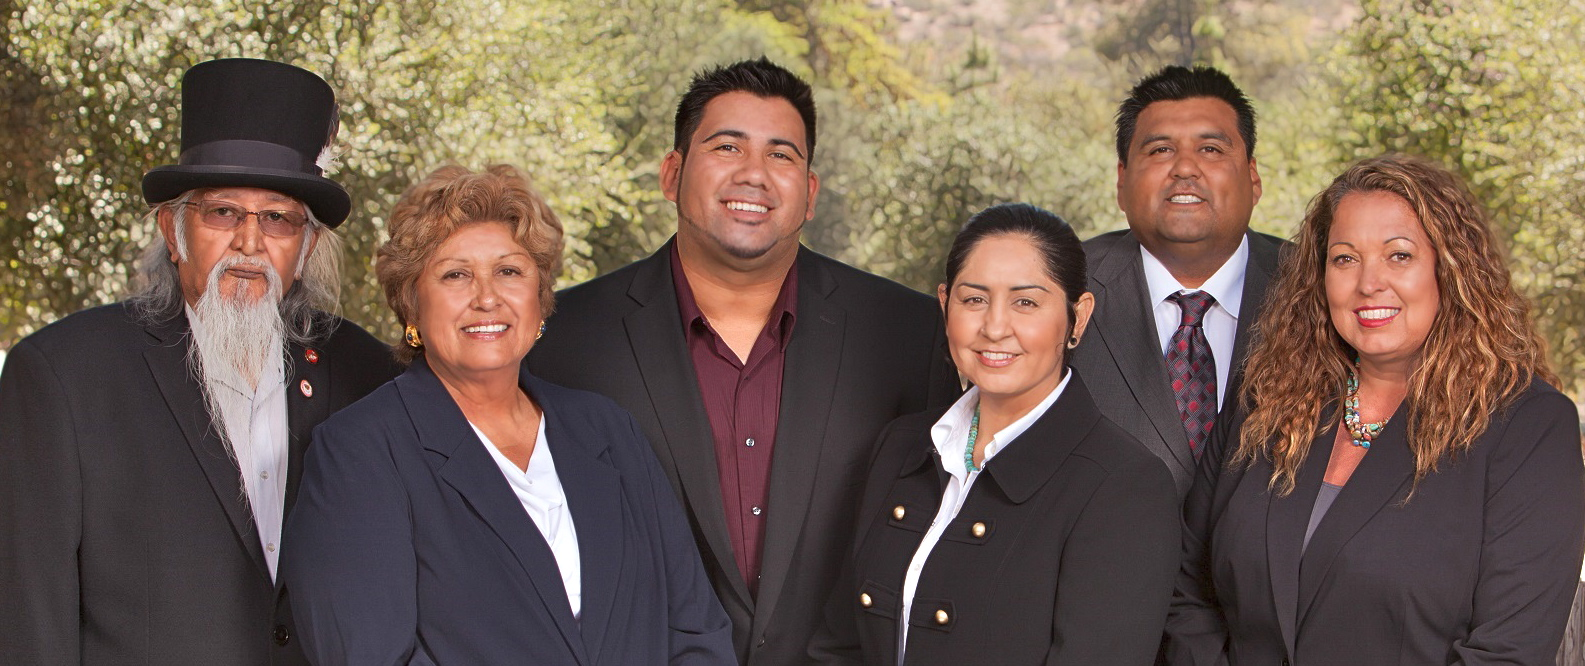 Tribal Council members, from left, Vice Chairman Kenny Meza, council member Carlene Chamberlain, council member Michael Hunter, Chairwoman Erica Pinto, councilmember Christopher Pinto, secretary and treasurer Lisa Cumper.